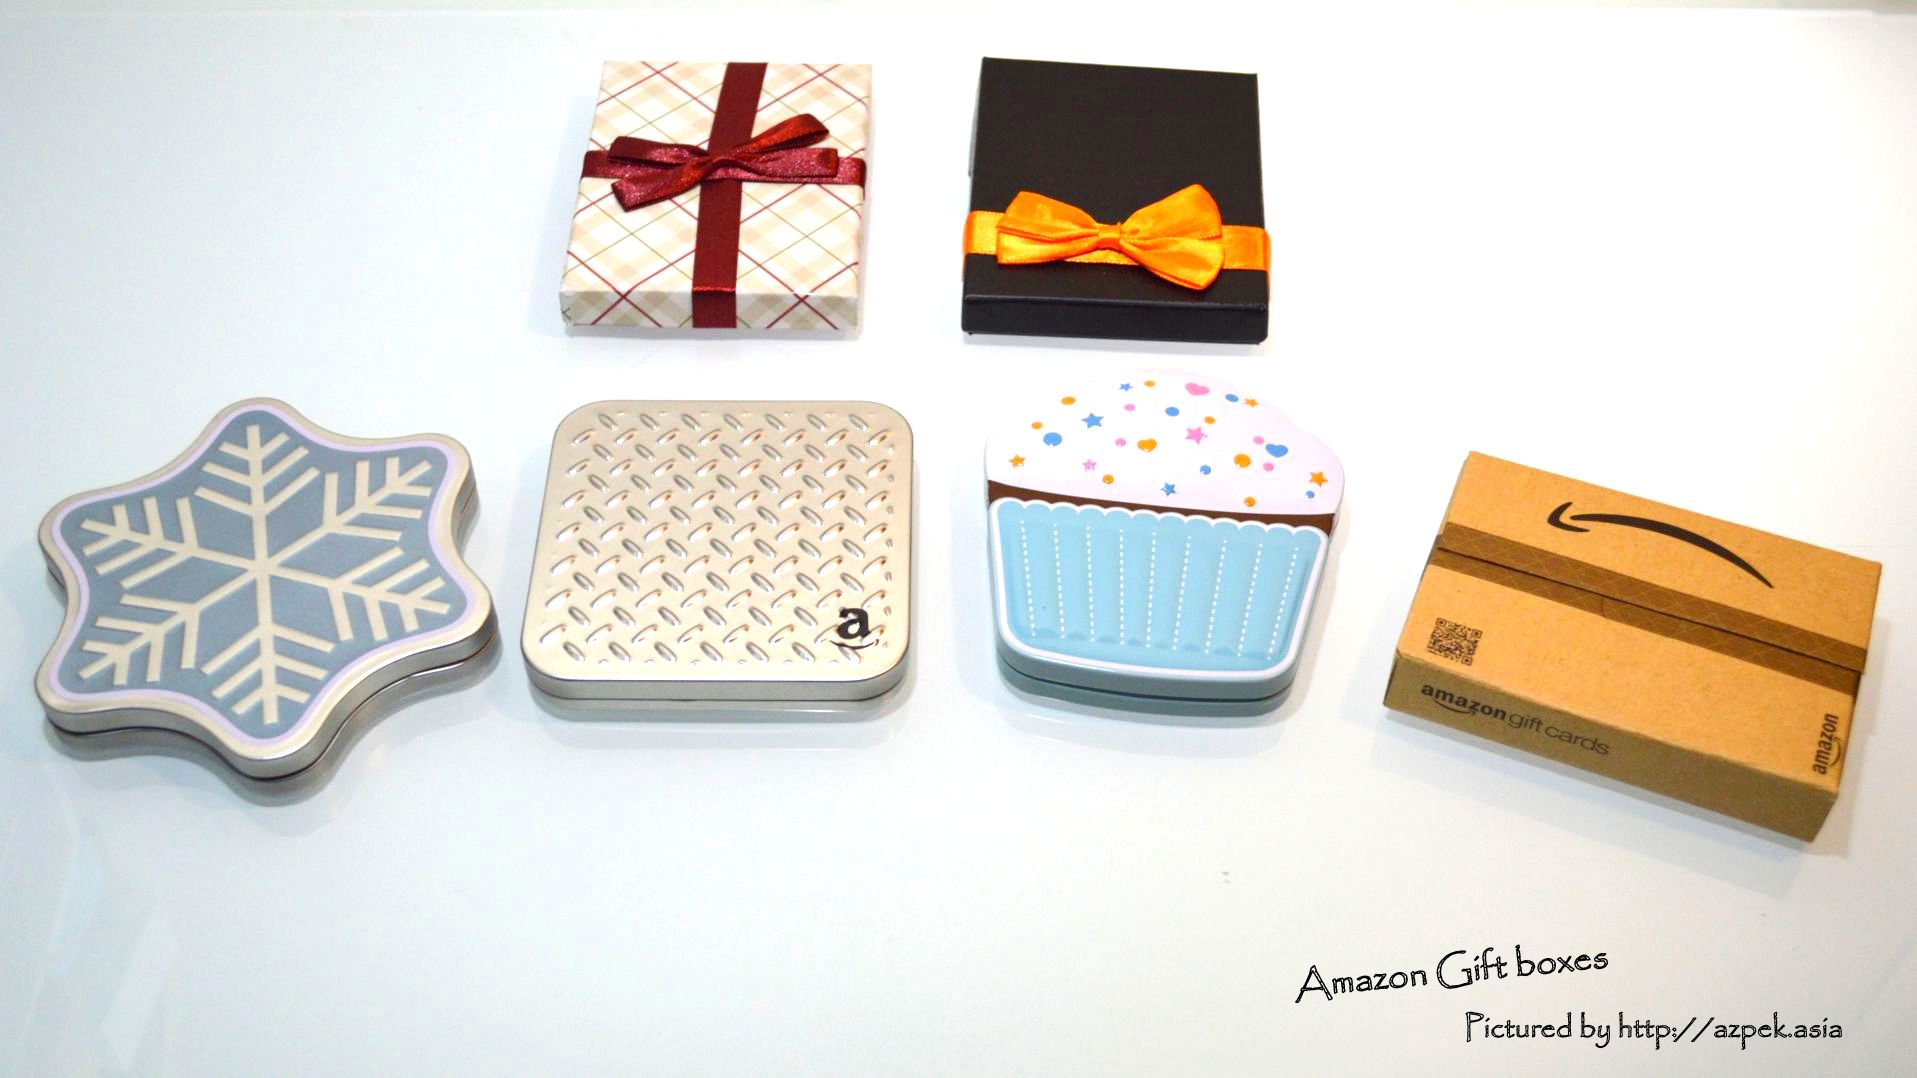 Amazon Gift Boxes sold in Japan